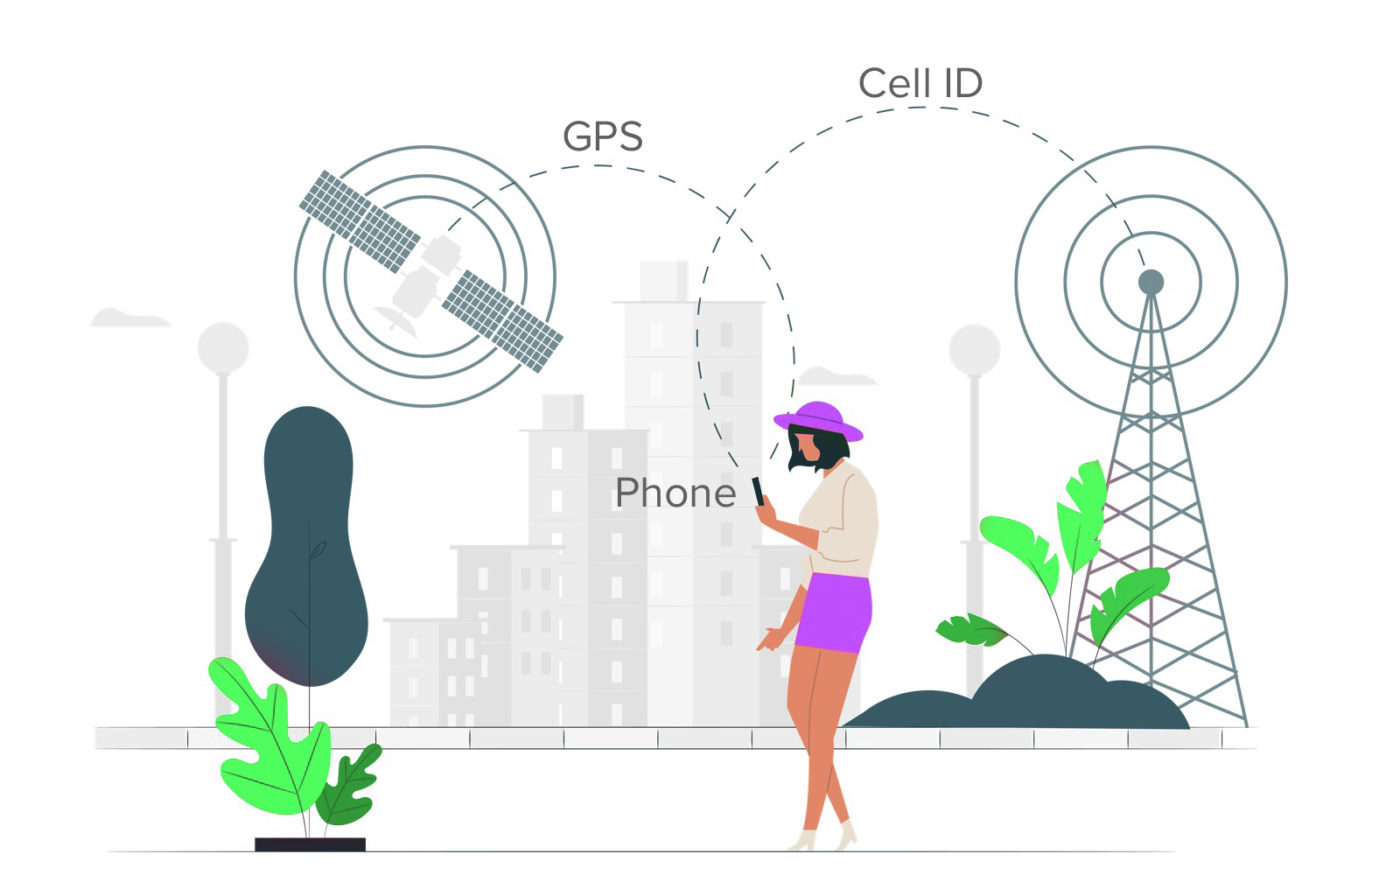 a combination of GPS, cellular, and Wi-Fi data